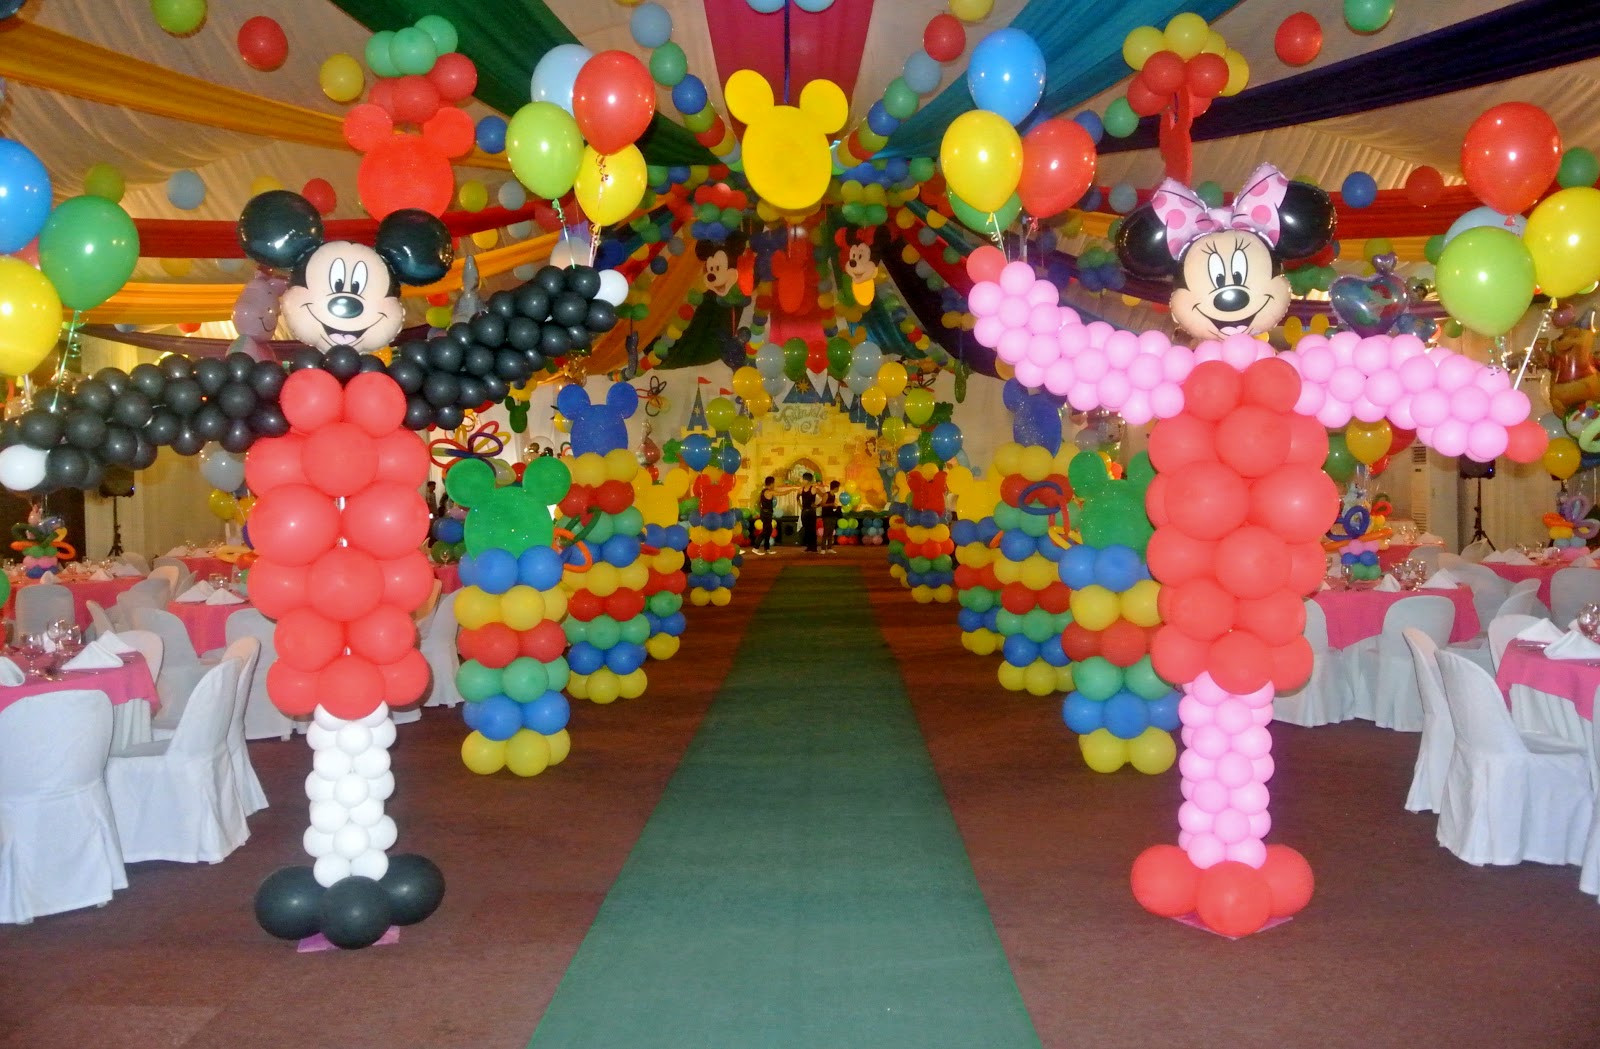 Best ideas about Disneyland Birthday Party . Save or Pin Parties by Agel Disneyland Theme Party Now.